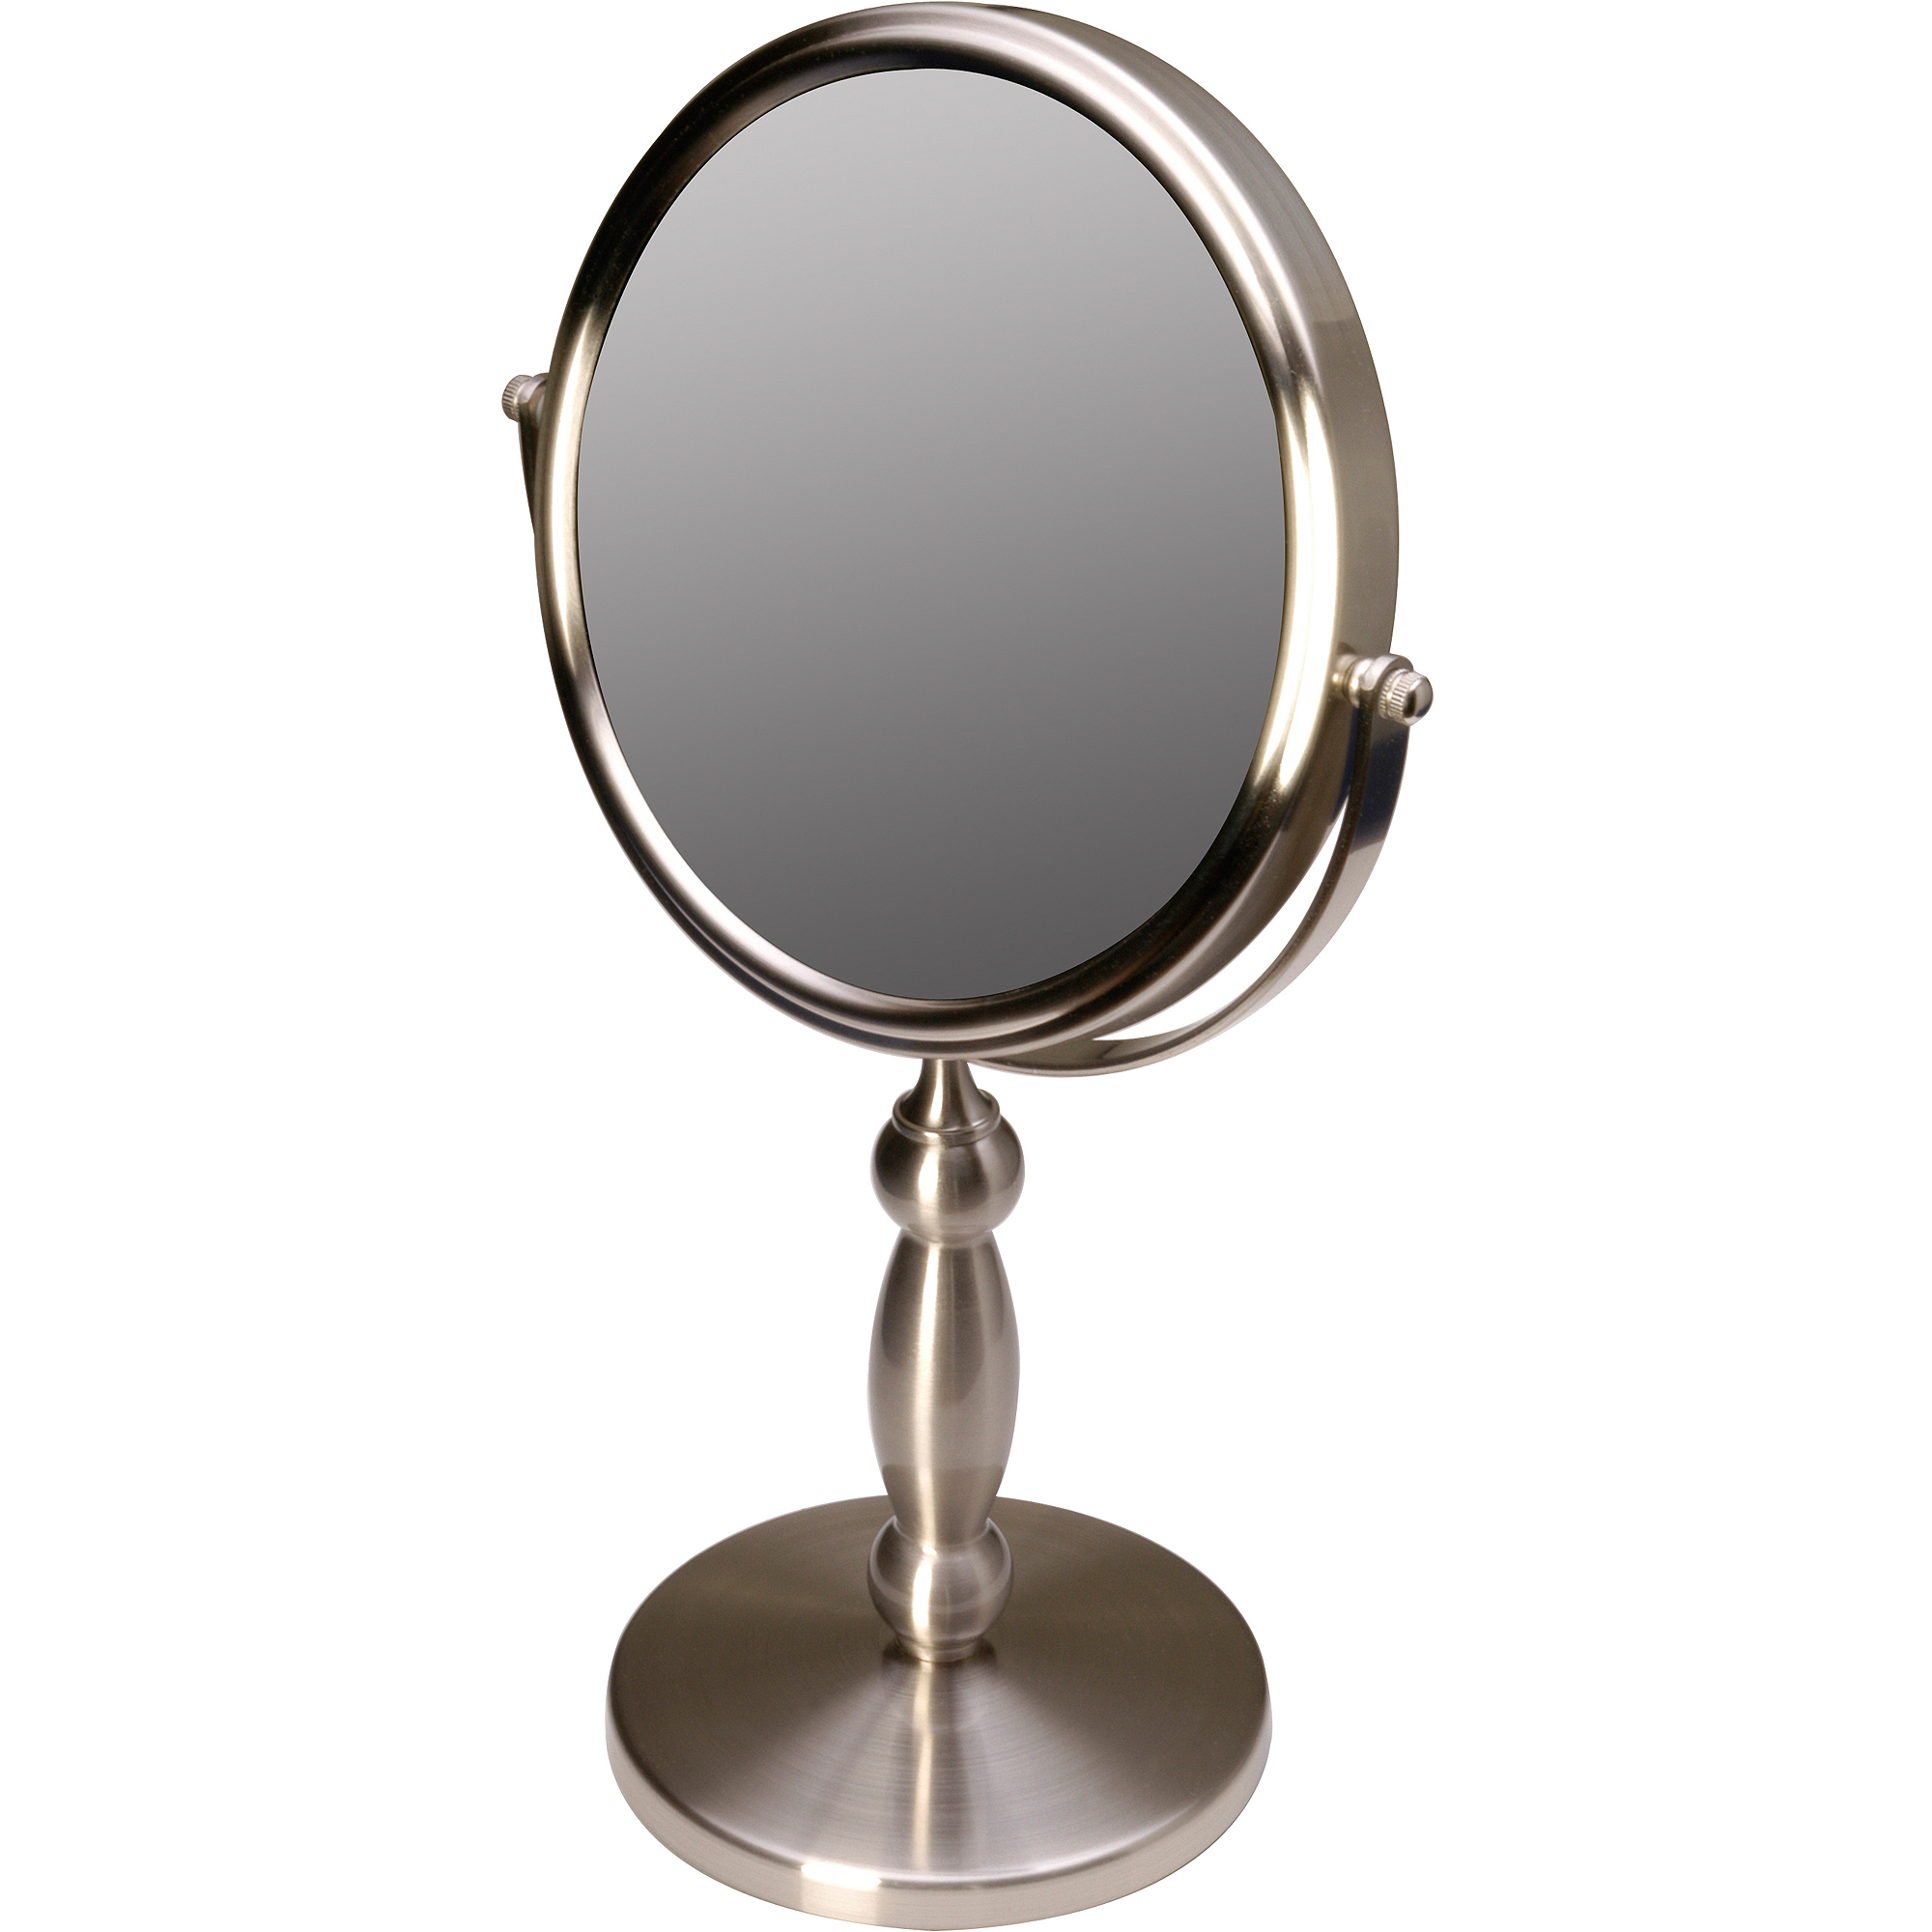 Best Lighted Makeup Mirror | Bedroom Vanity with Lighted Mirror | Magnifying Mirror 20x